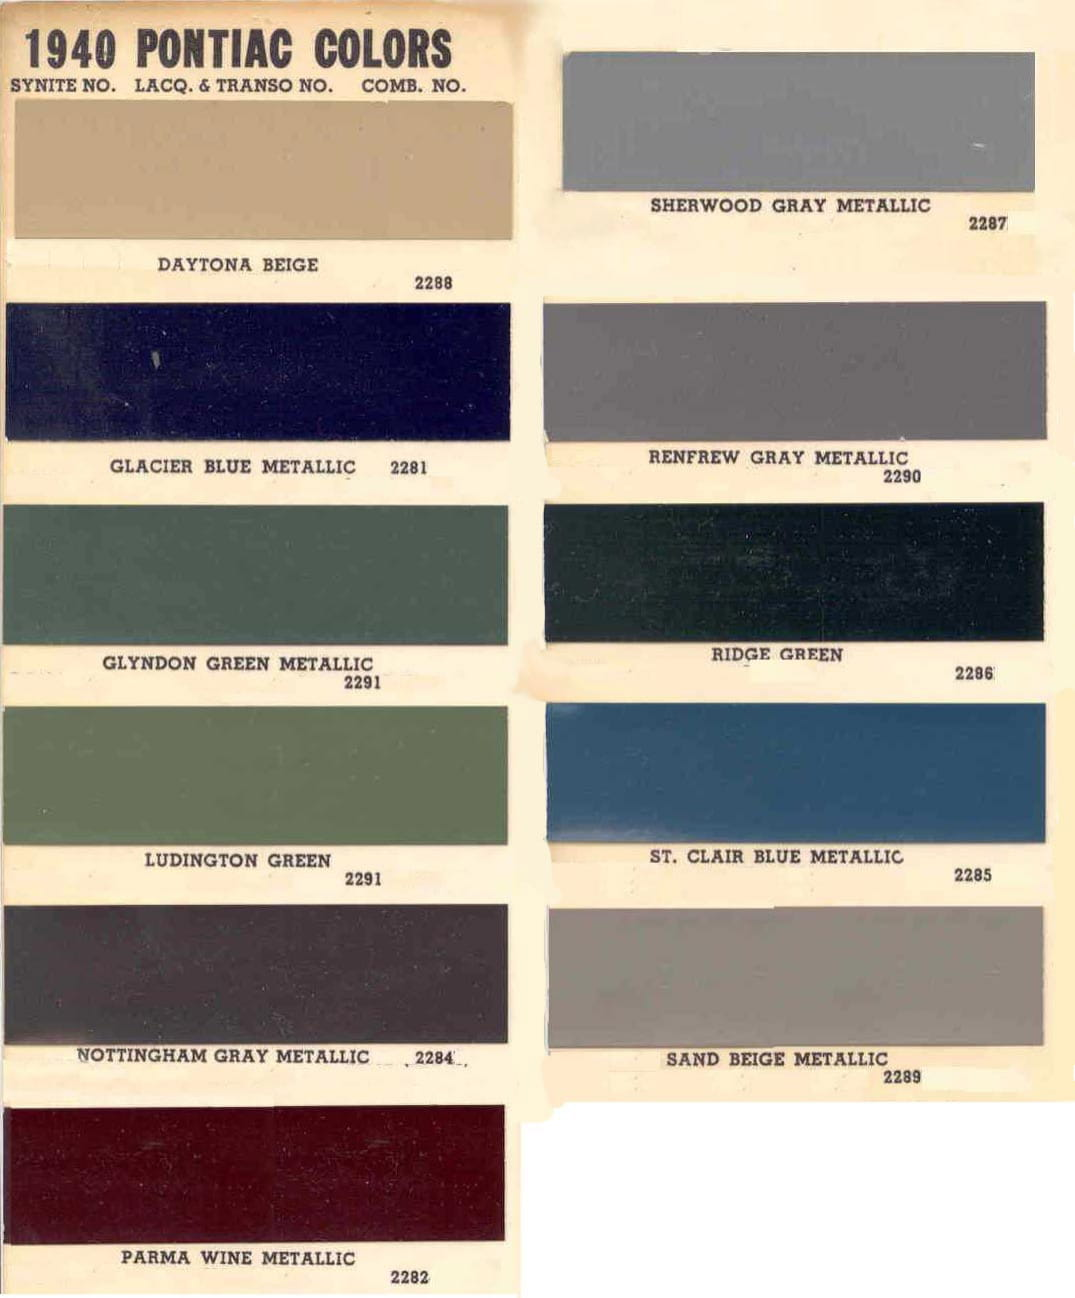 Color Code and Paint Color Chart for Pontiac for 1940